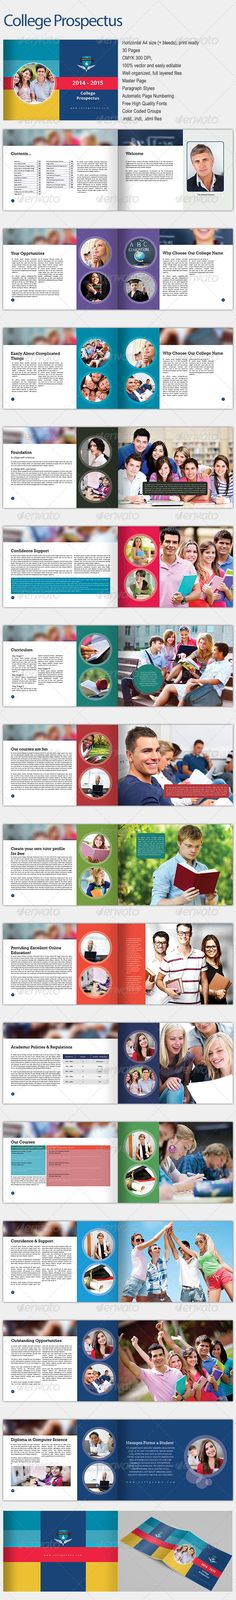 College University Prospectus Brochure Template  College